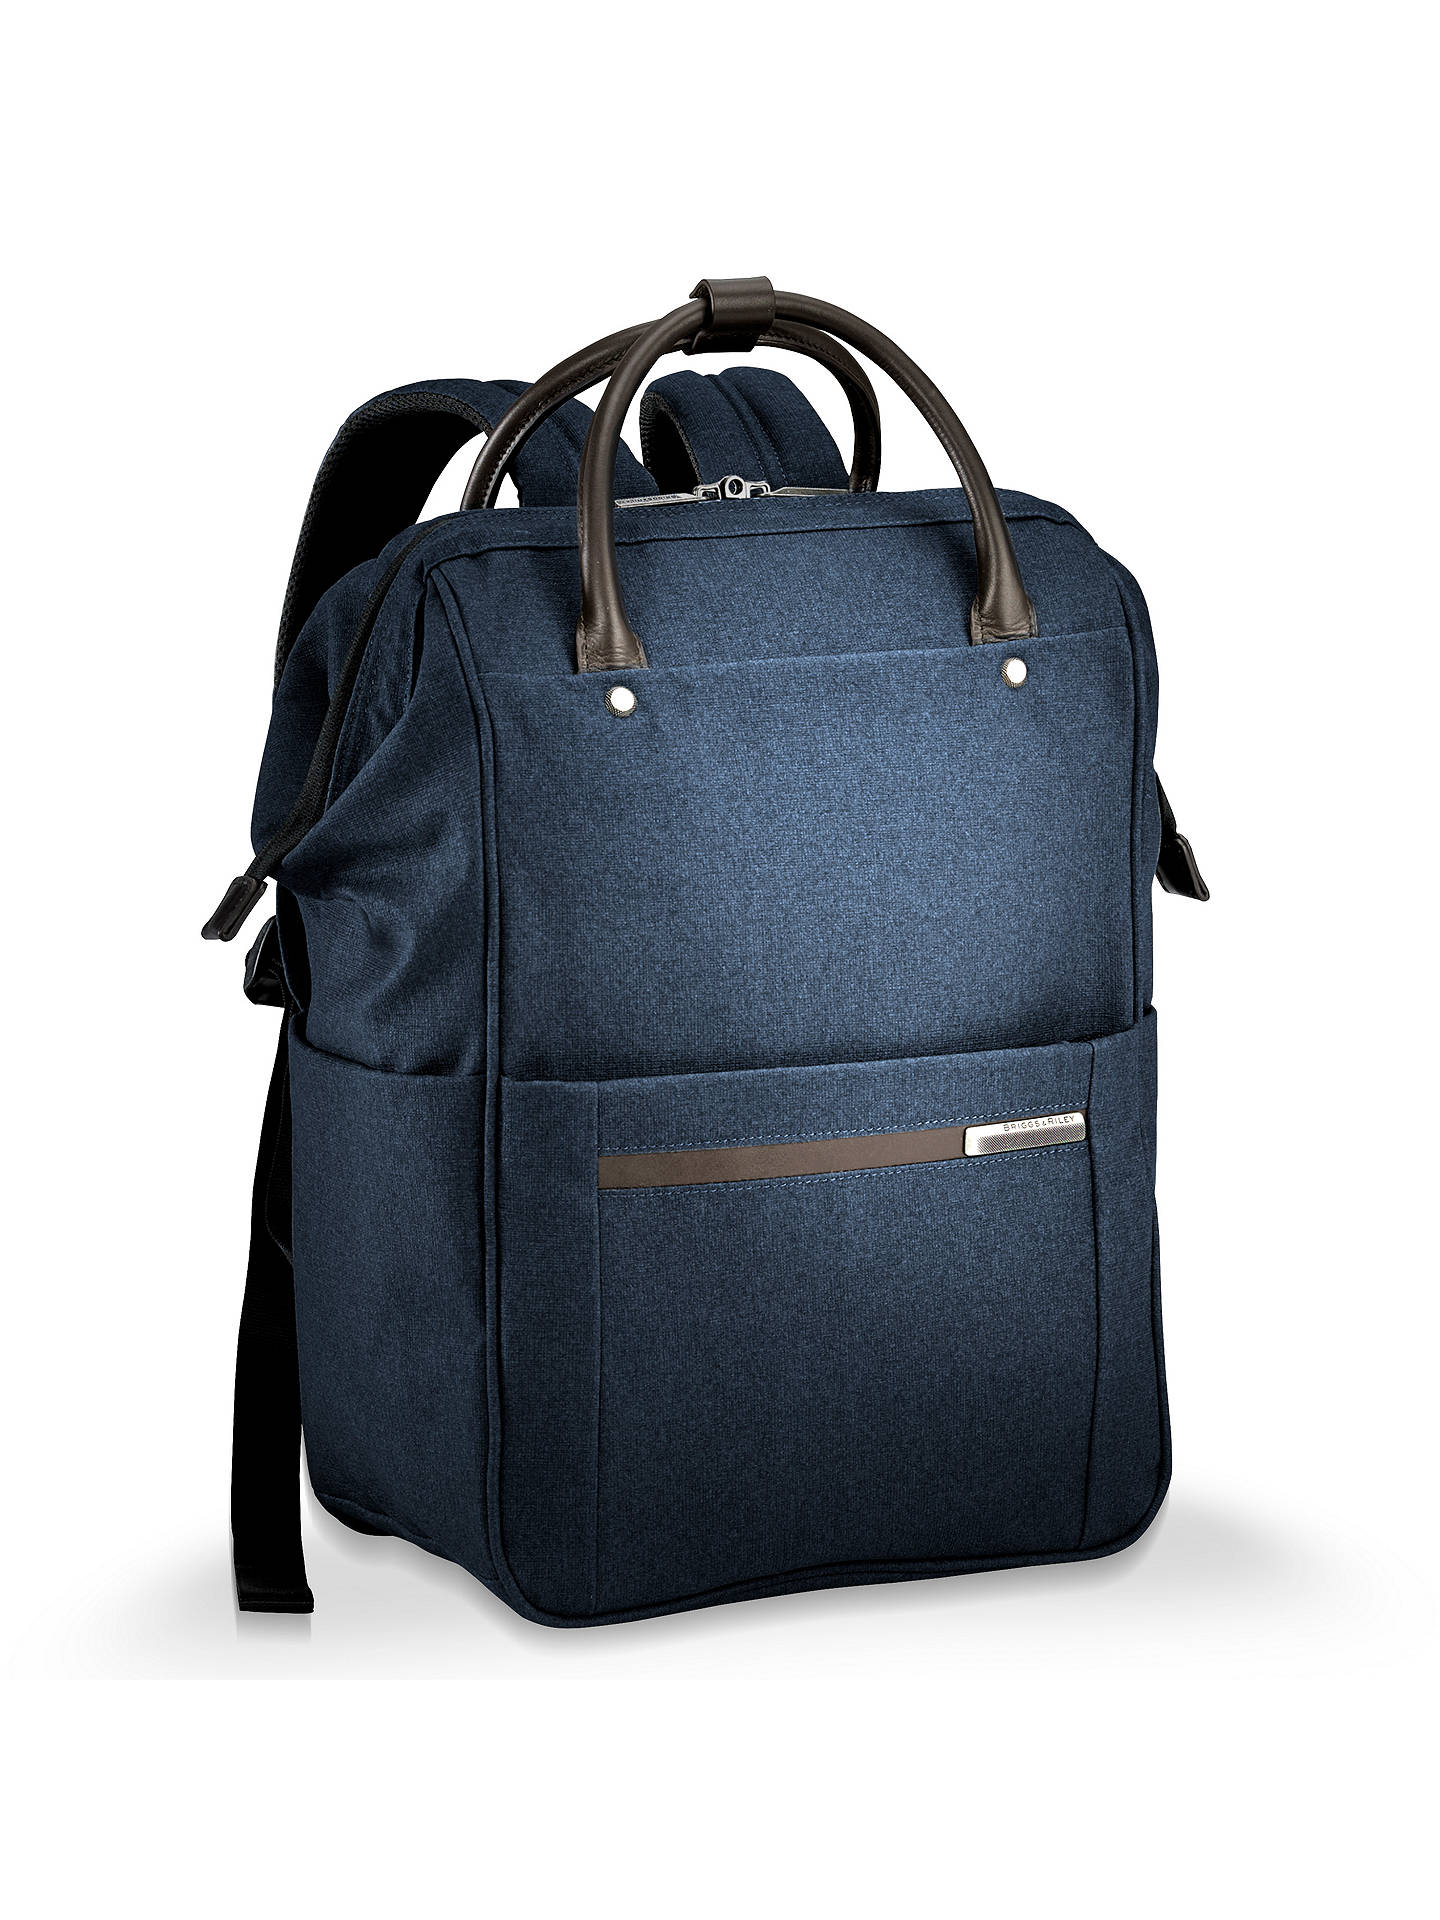 891d9de0a Buy Briggs & Riley Kinzie Frame Wide-Mouth Backpack, Navy Online at  johnlewis.